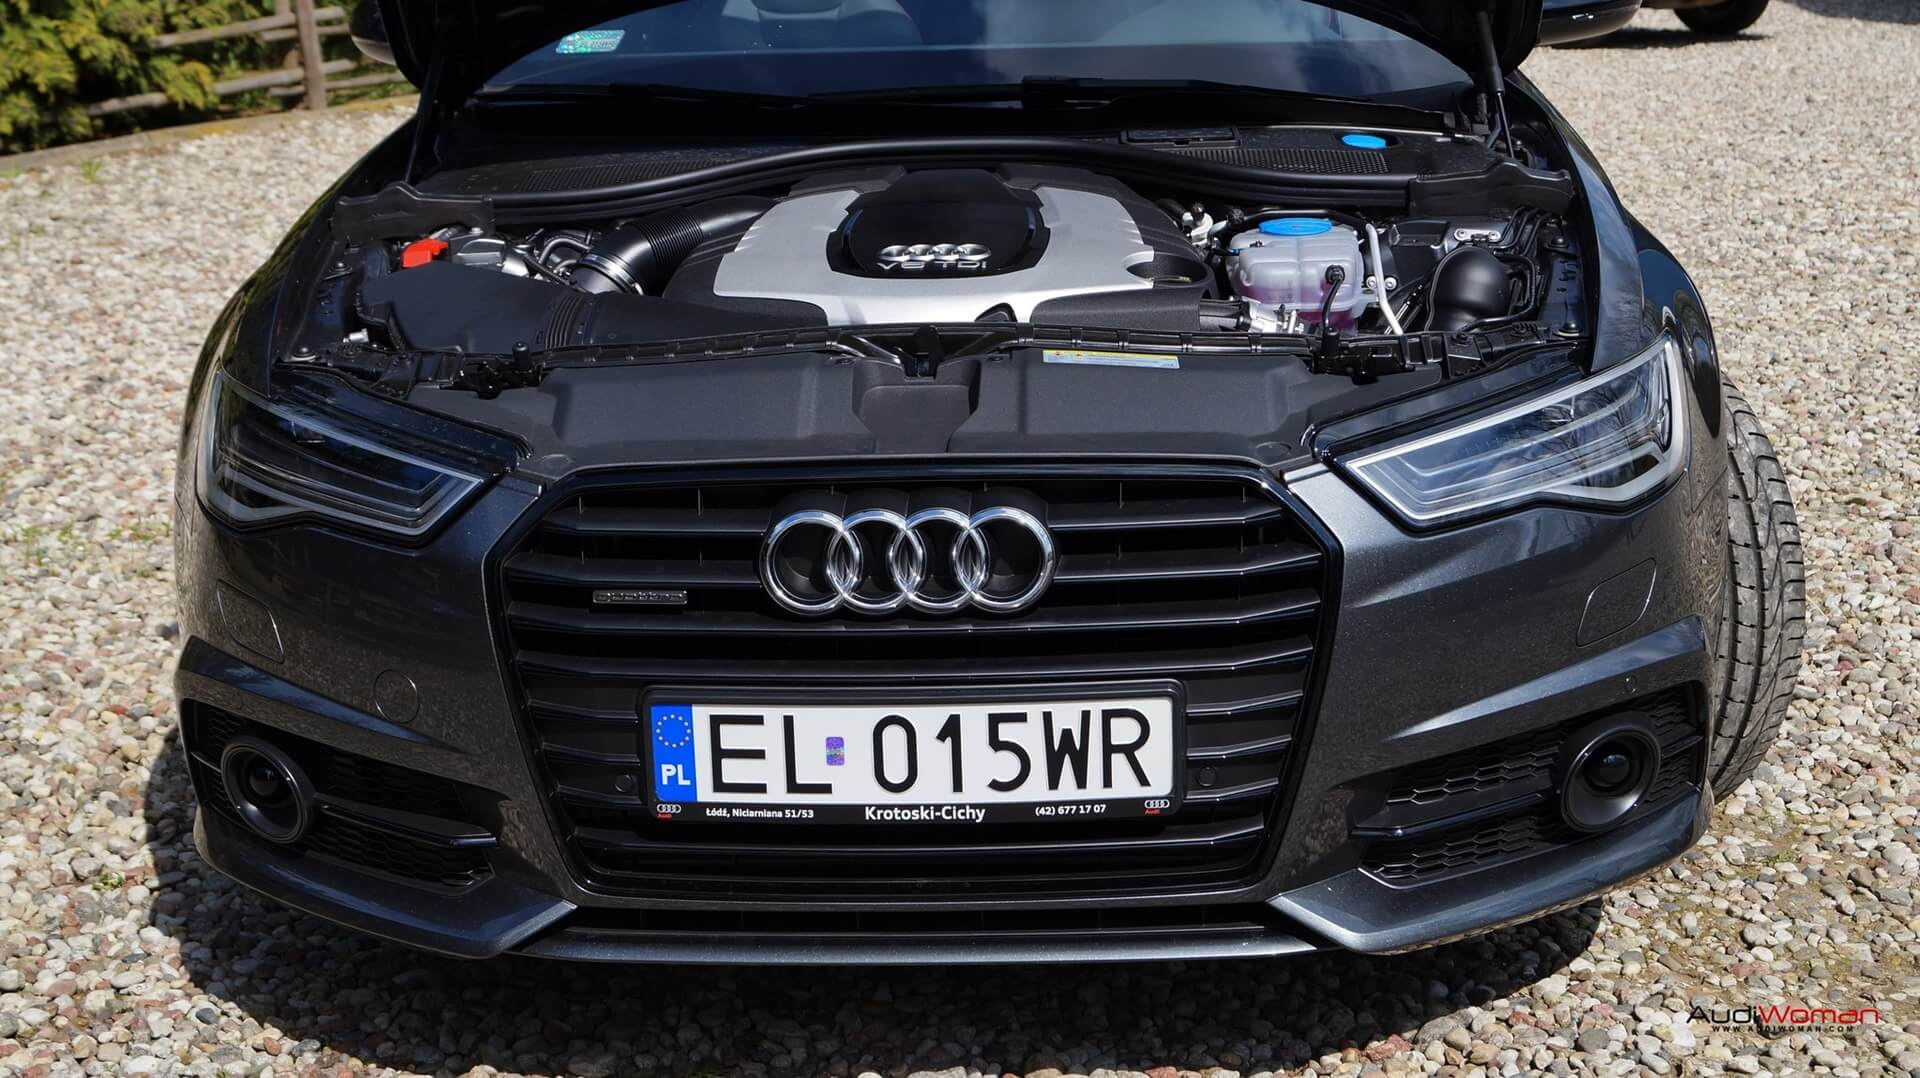 Audi A6 C7 Competition